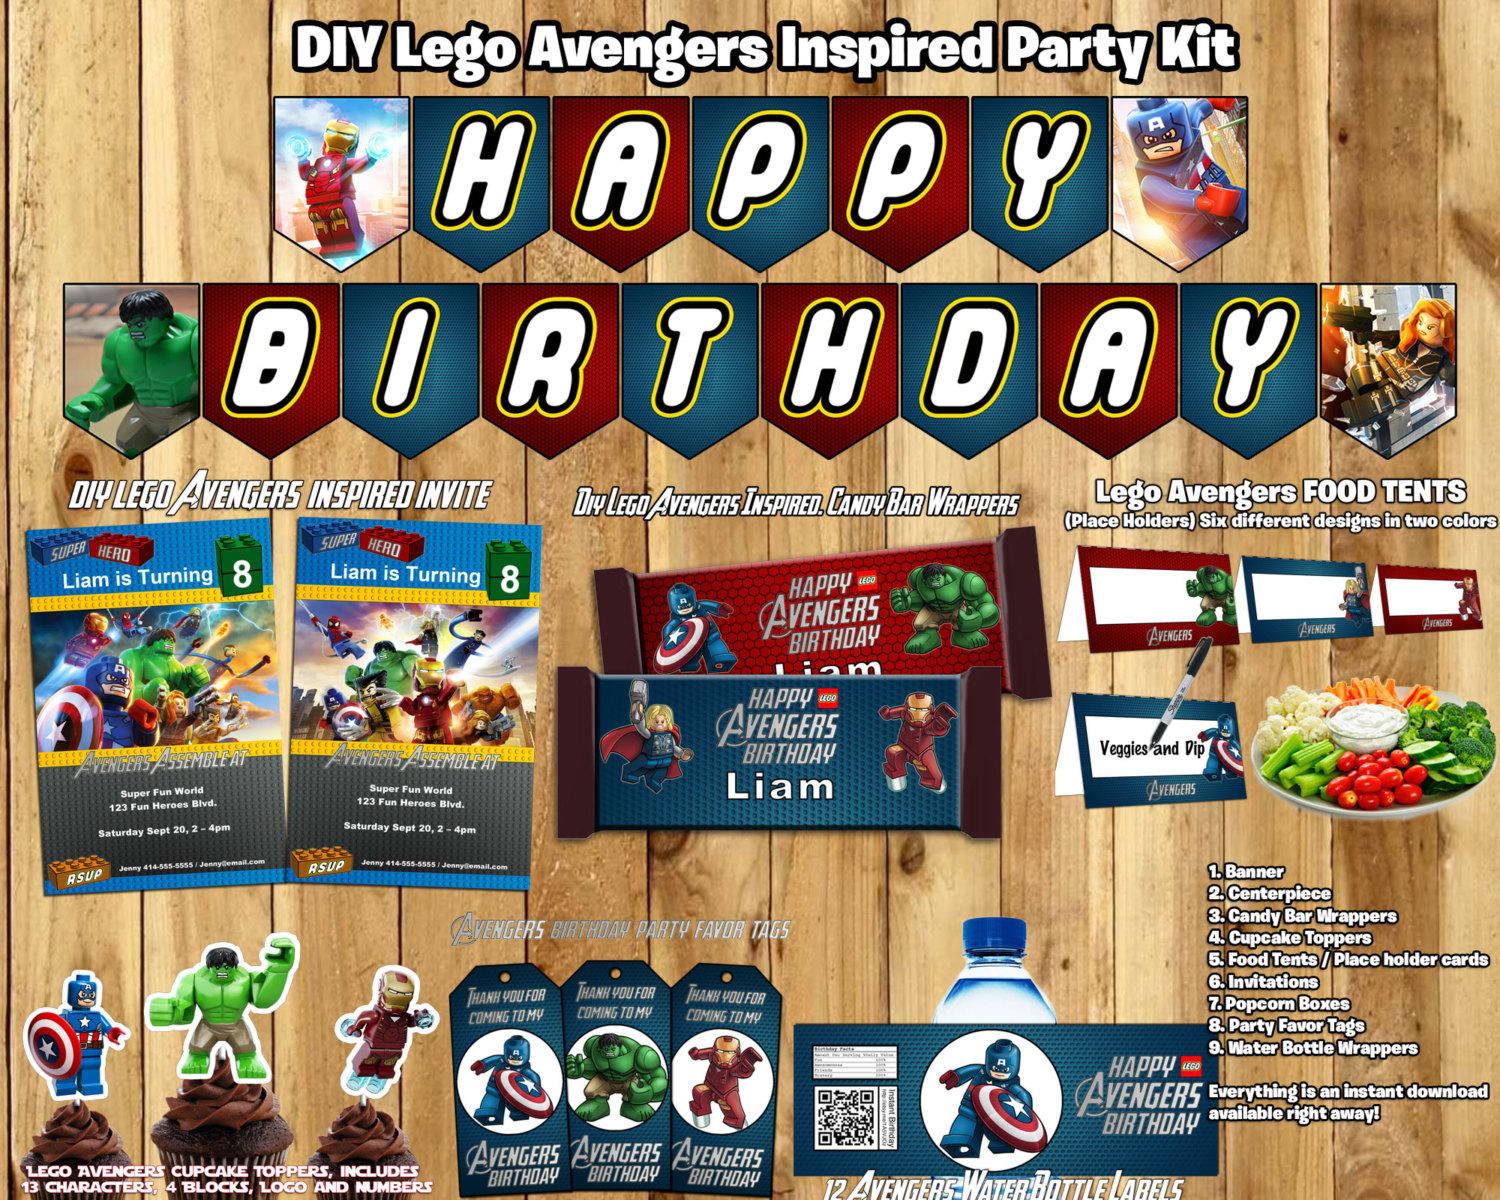 lego avengers birthday party kit download banner invite cupcake toppers favor tags bottle labels centerpiece lego avengers birthday party